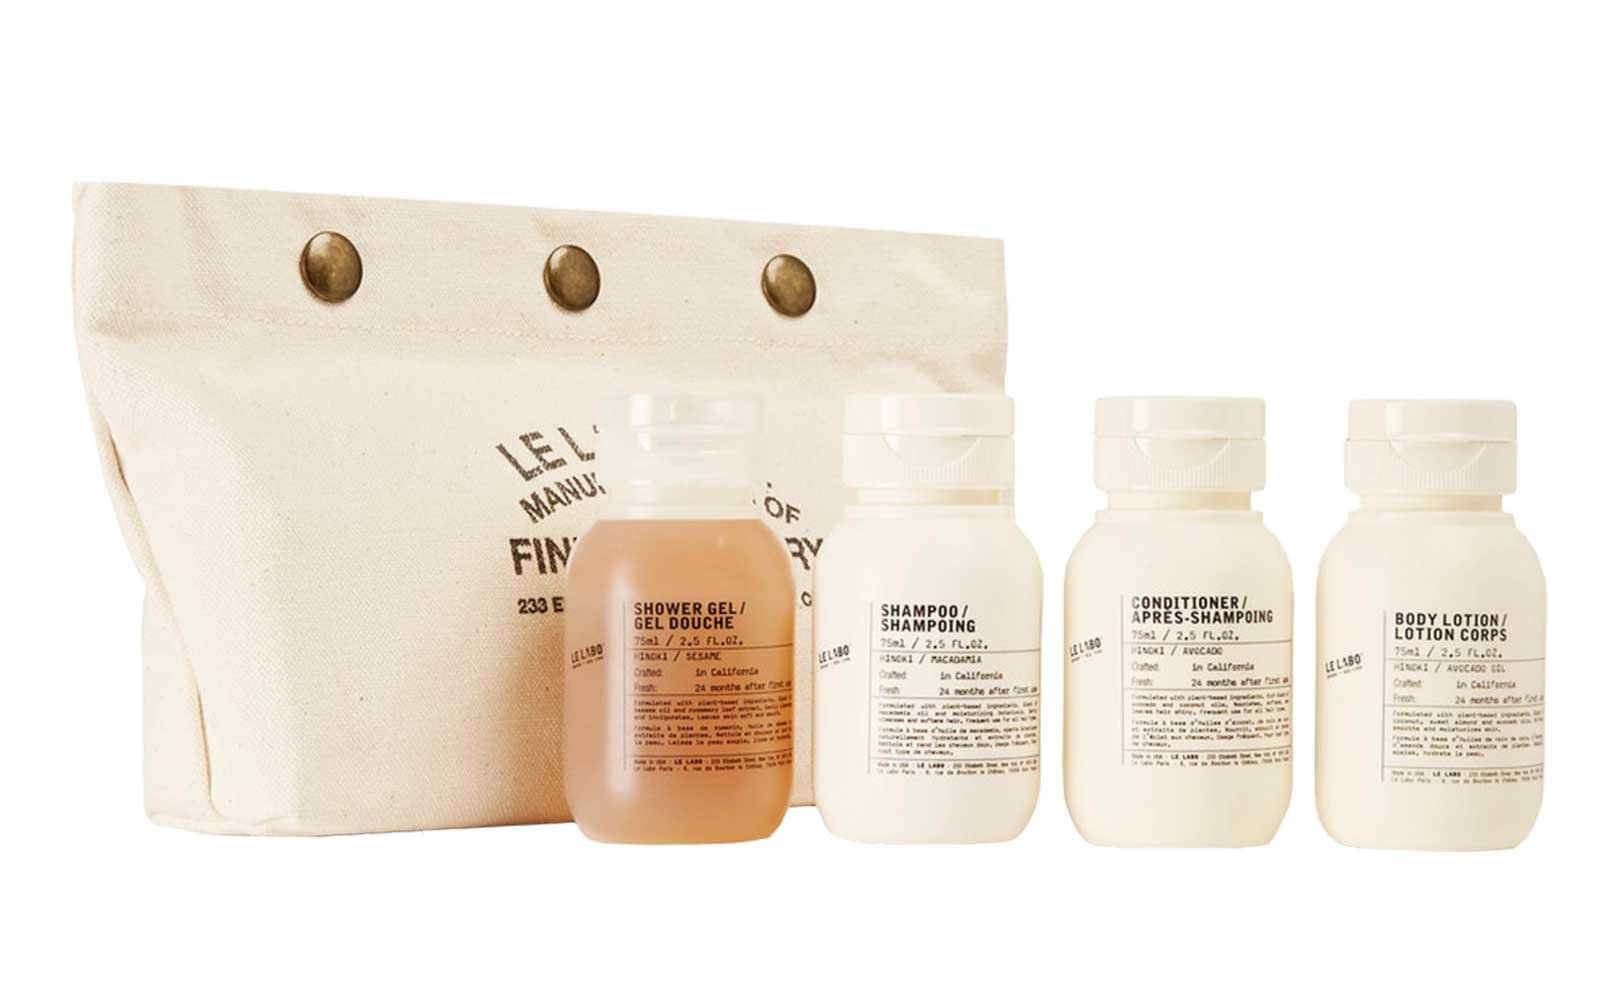 Le Labo Hair & Body travel set